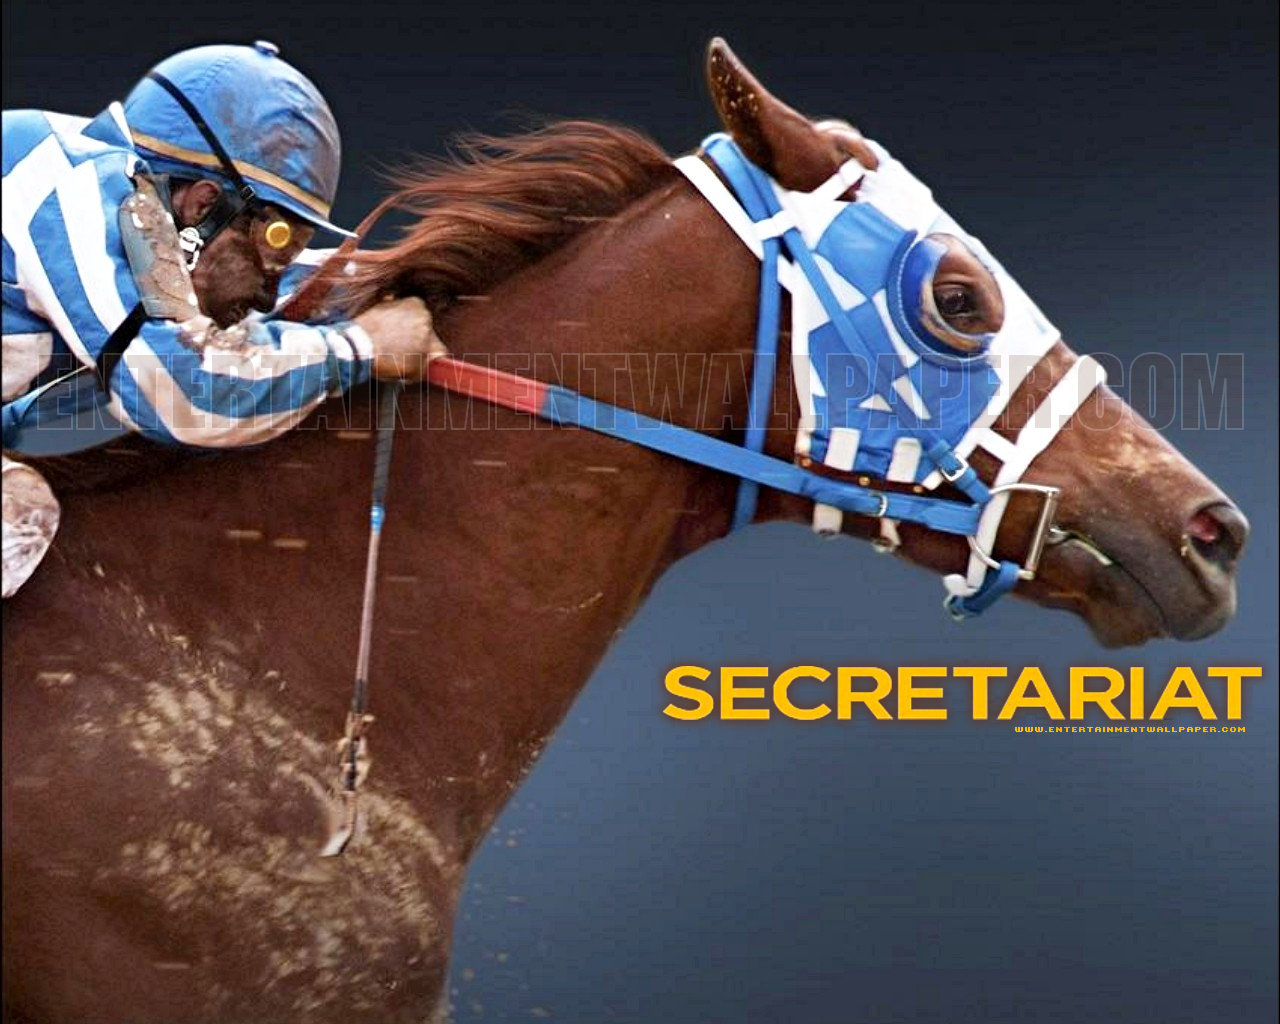 secretariat wallpaper-#6